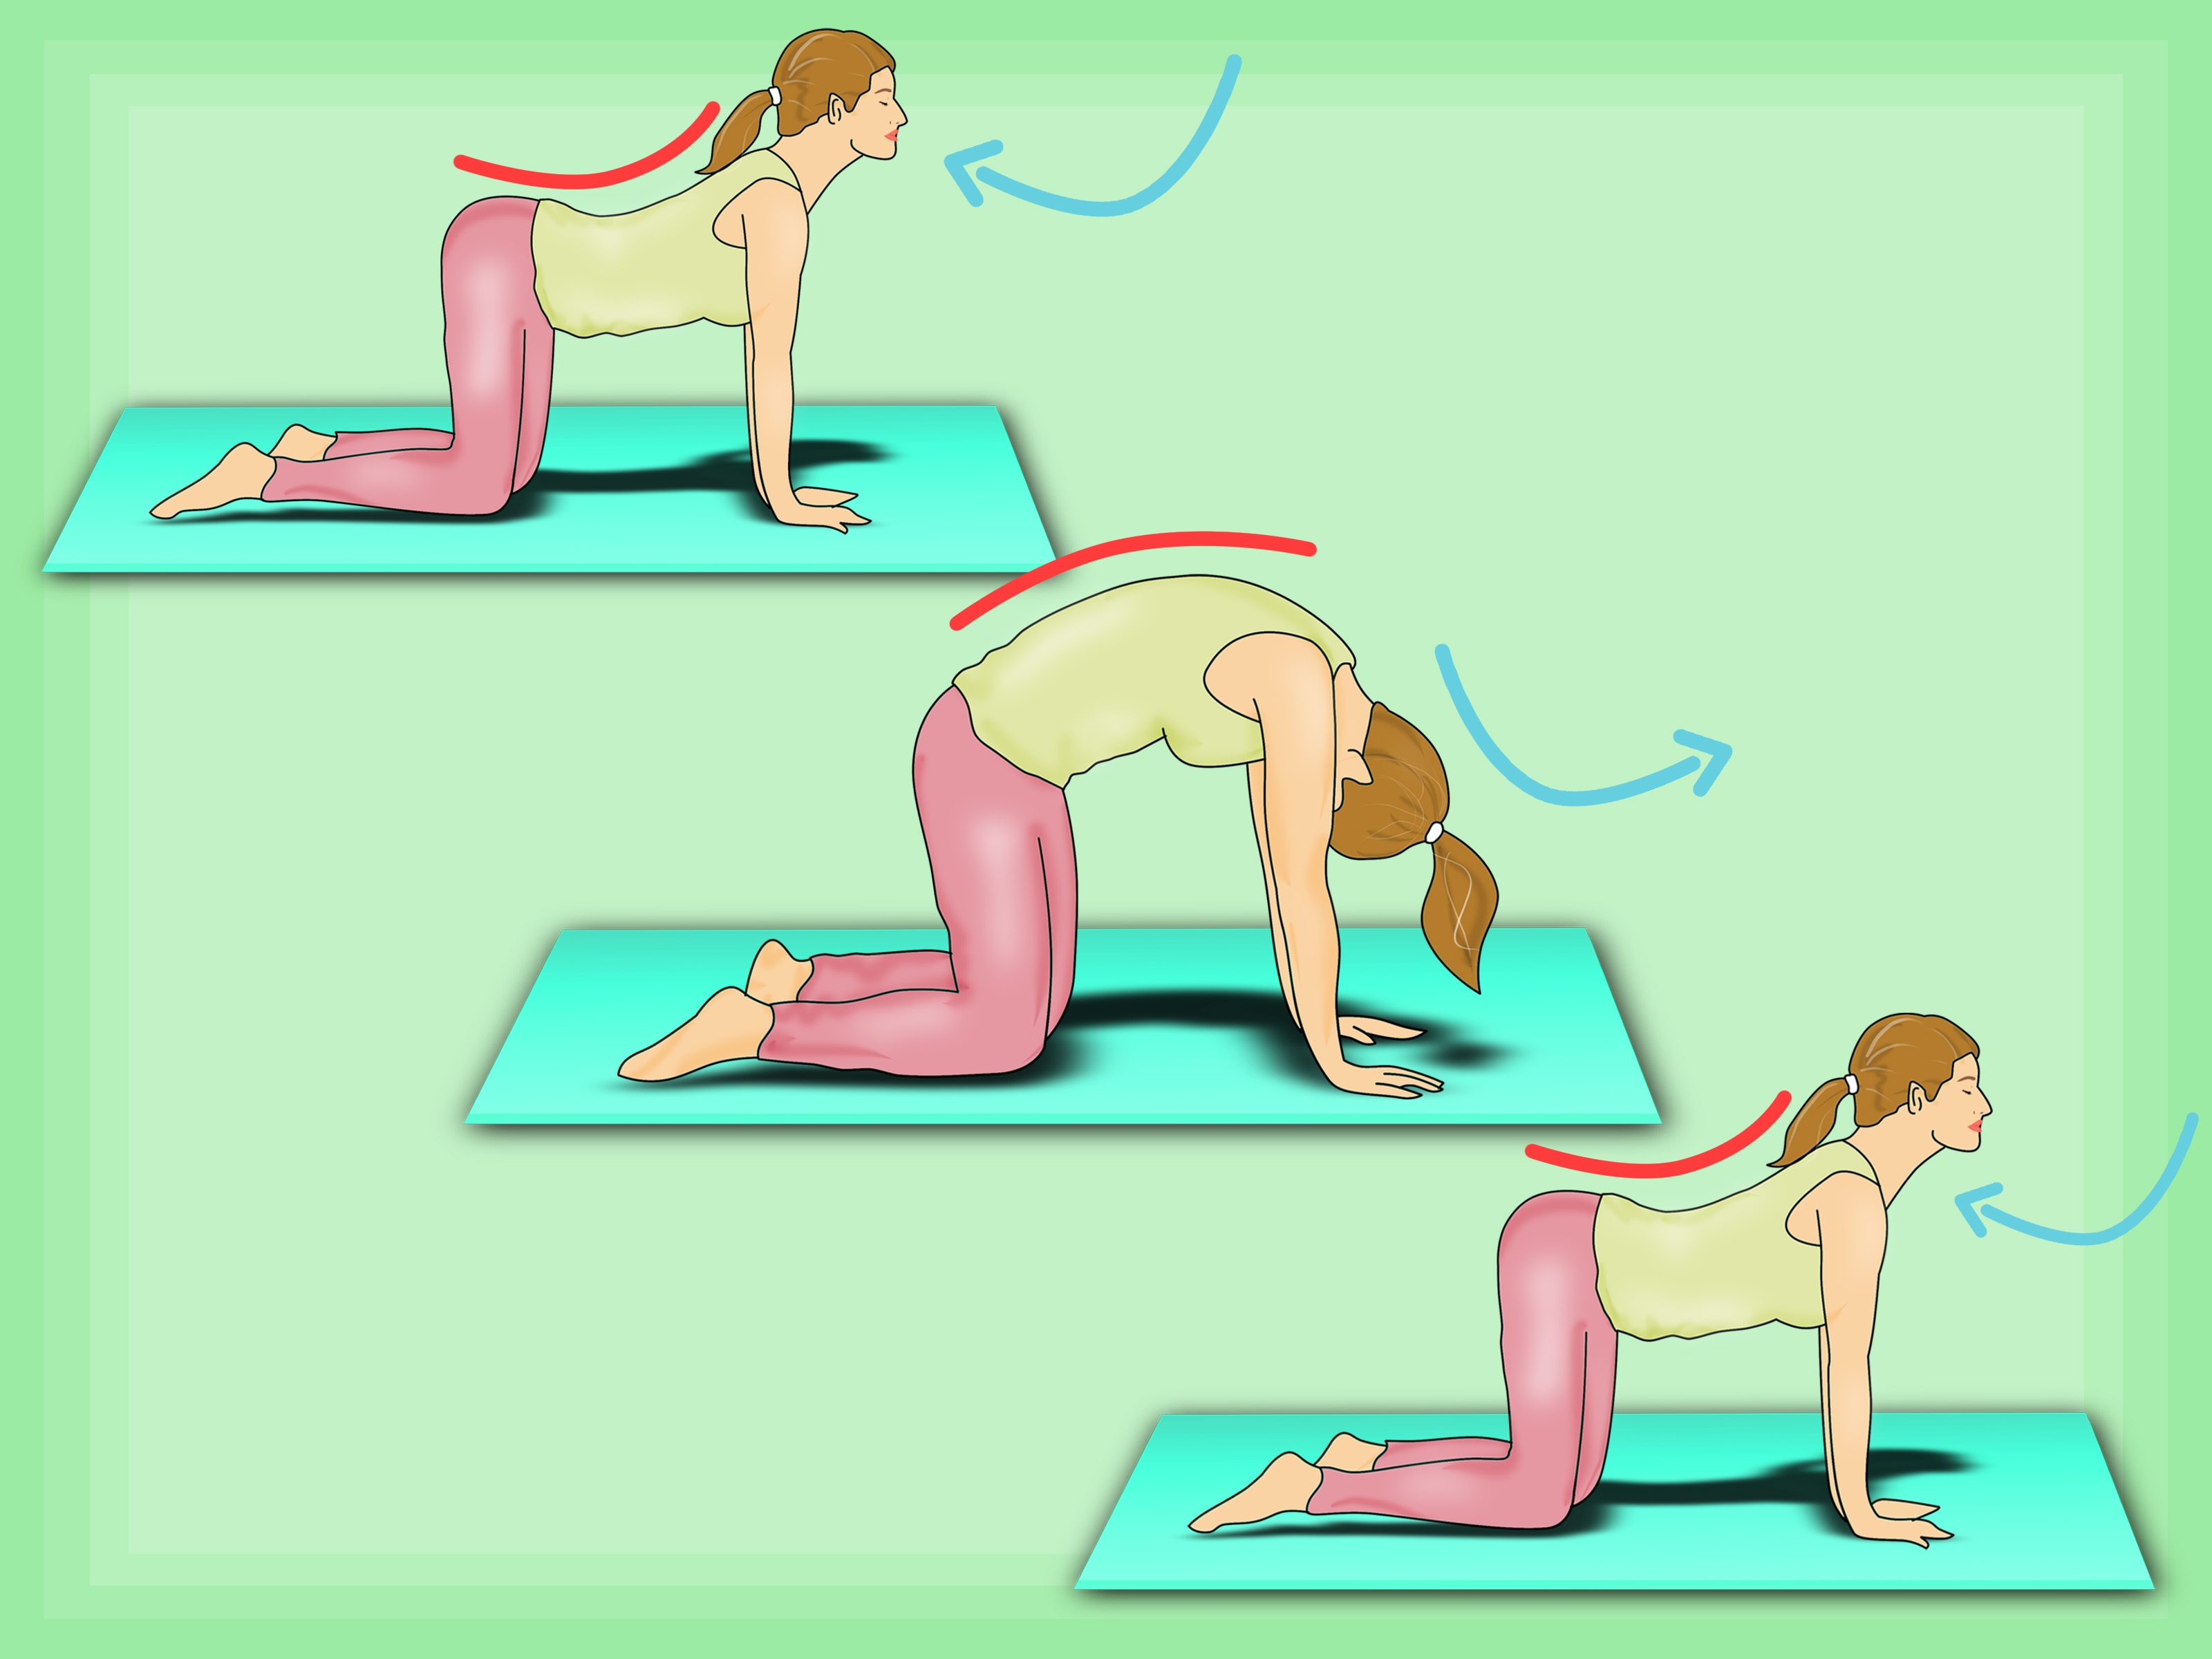 Yoga cat pose clipart clip art freeuse How to Do the Cat‐Cow Yoga Pose: 7 Steps (with Pictures) clip art freeuse